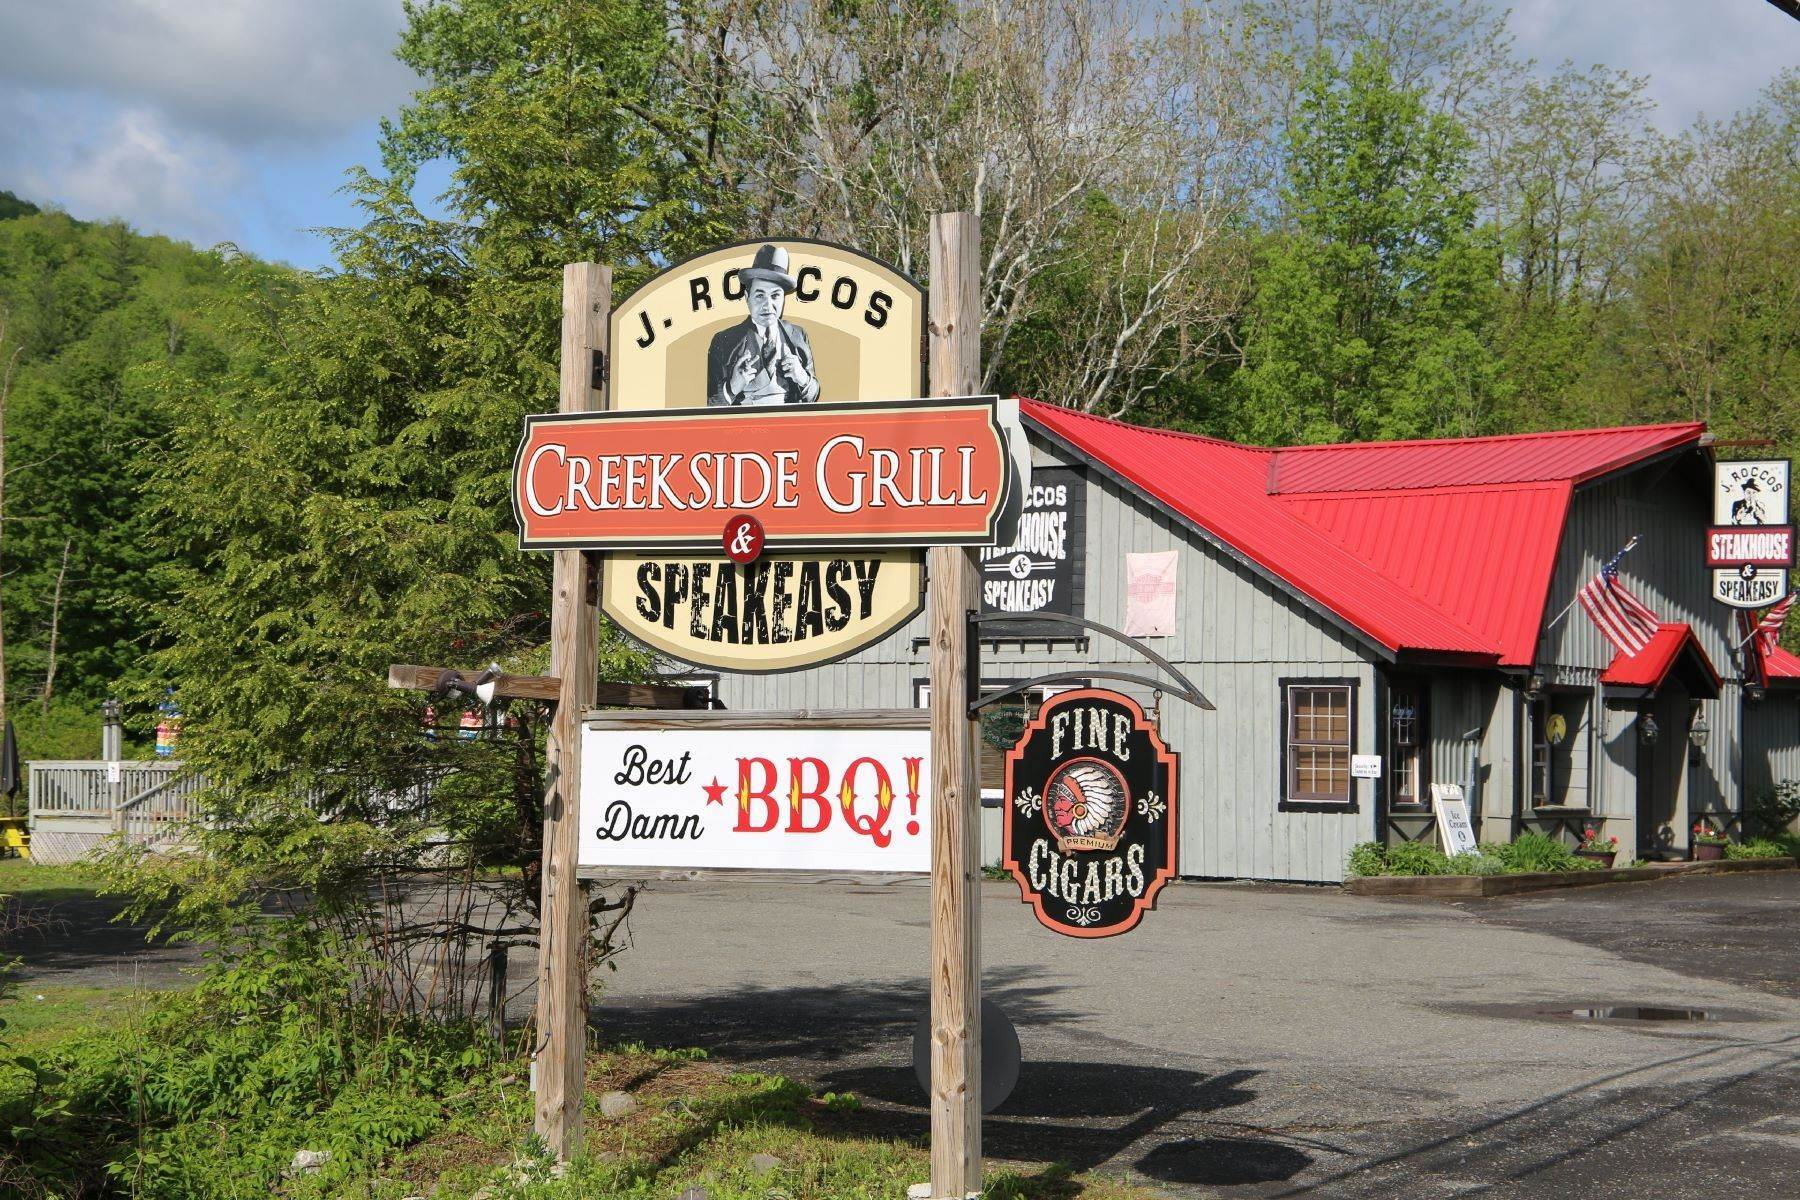 Property for Sale at J. Rocco's Restaurant 7159 New York 28, Allaben Shandaken, New York 12480 United States